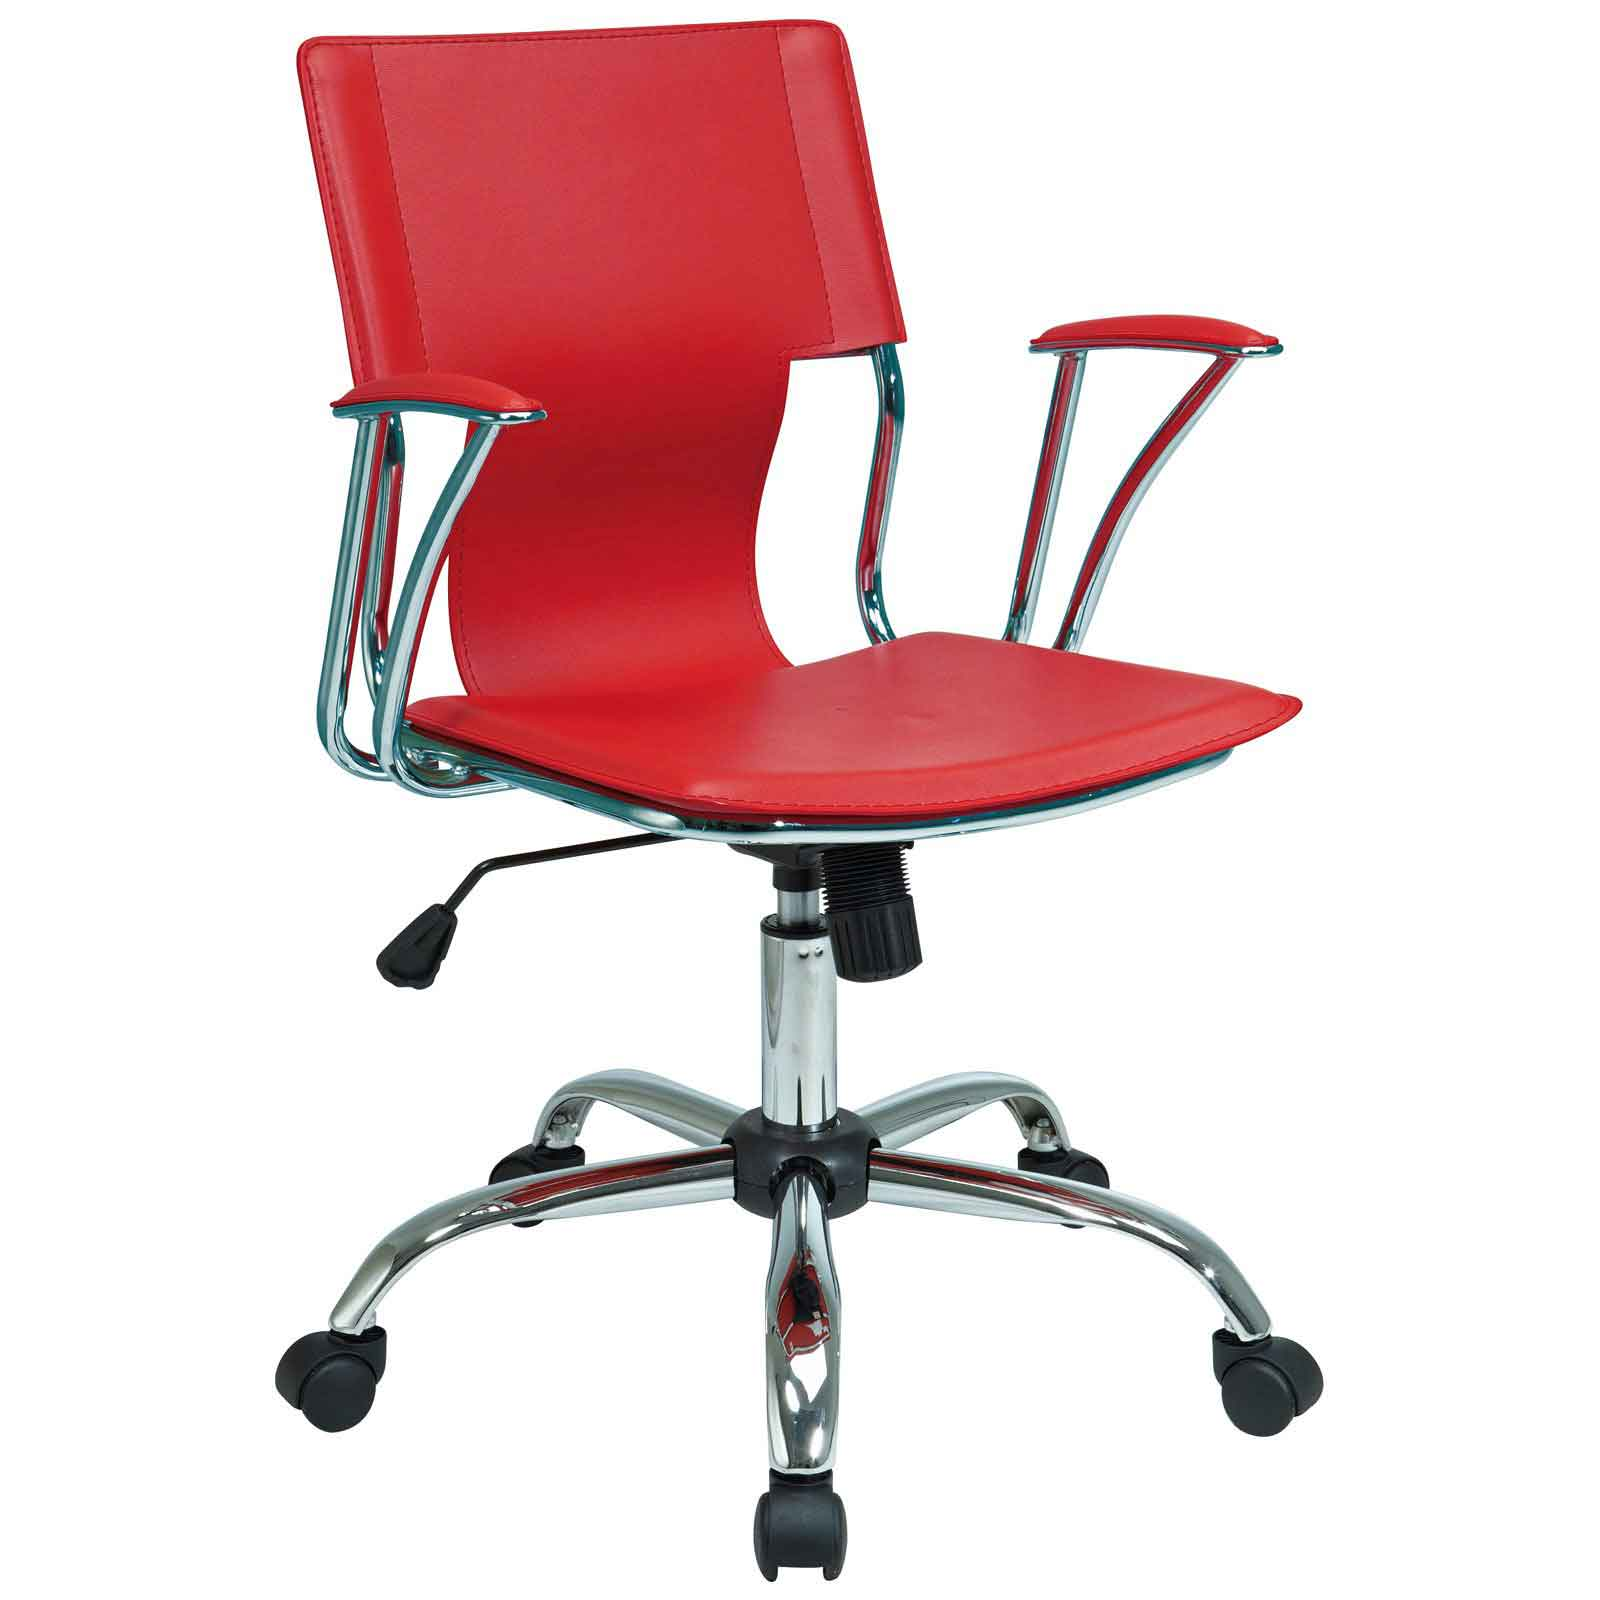 Avenue Six Red Stylish Office Chairs from Office Star